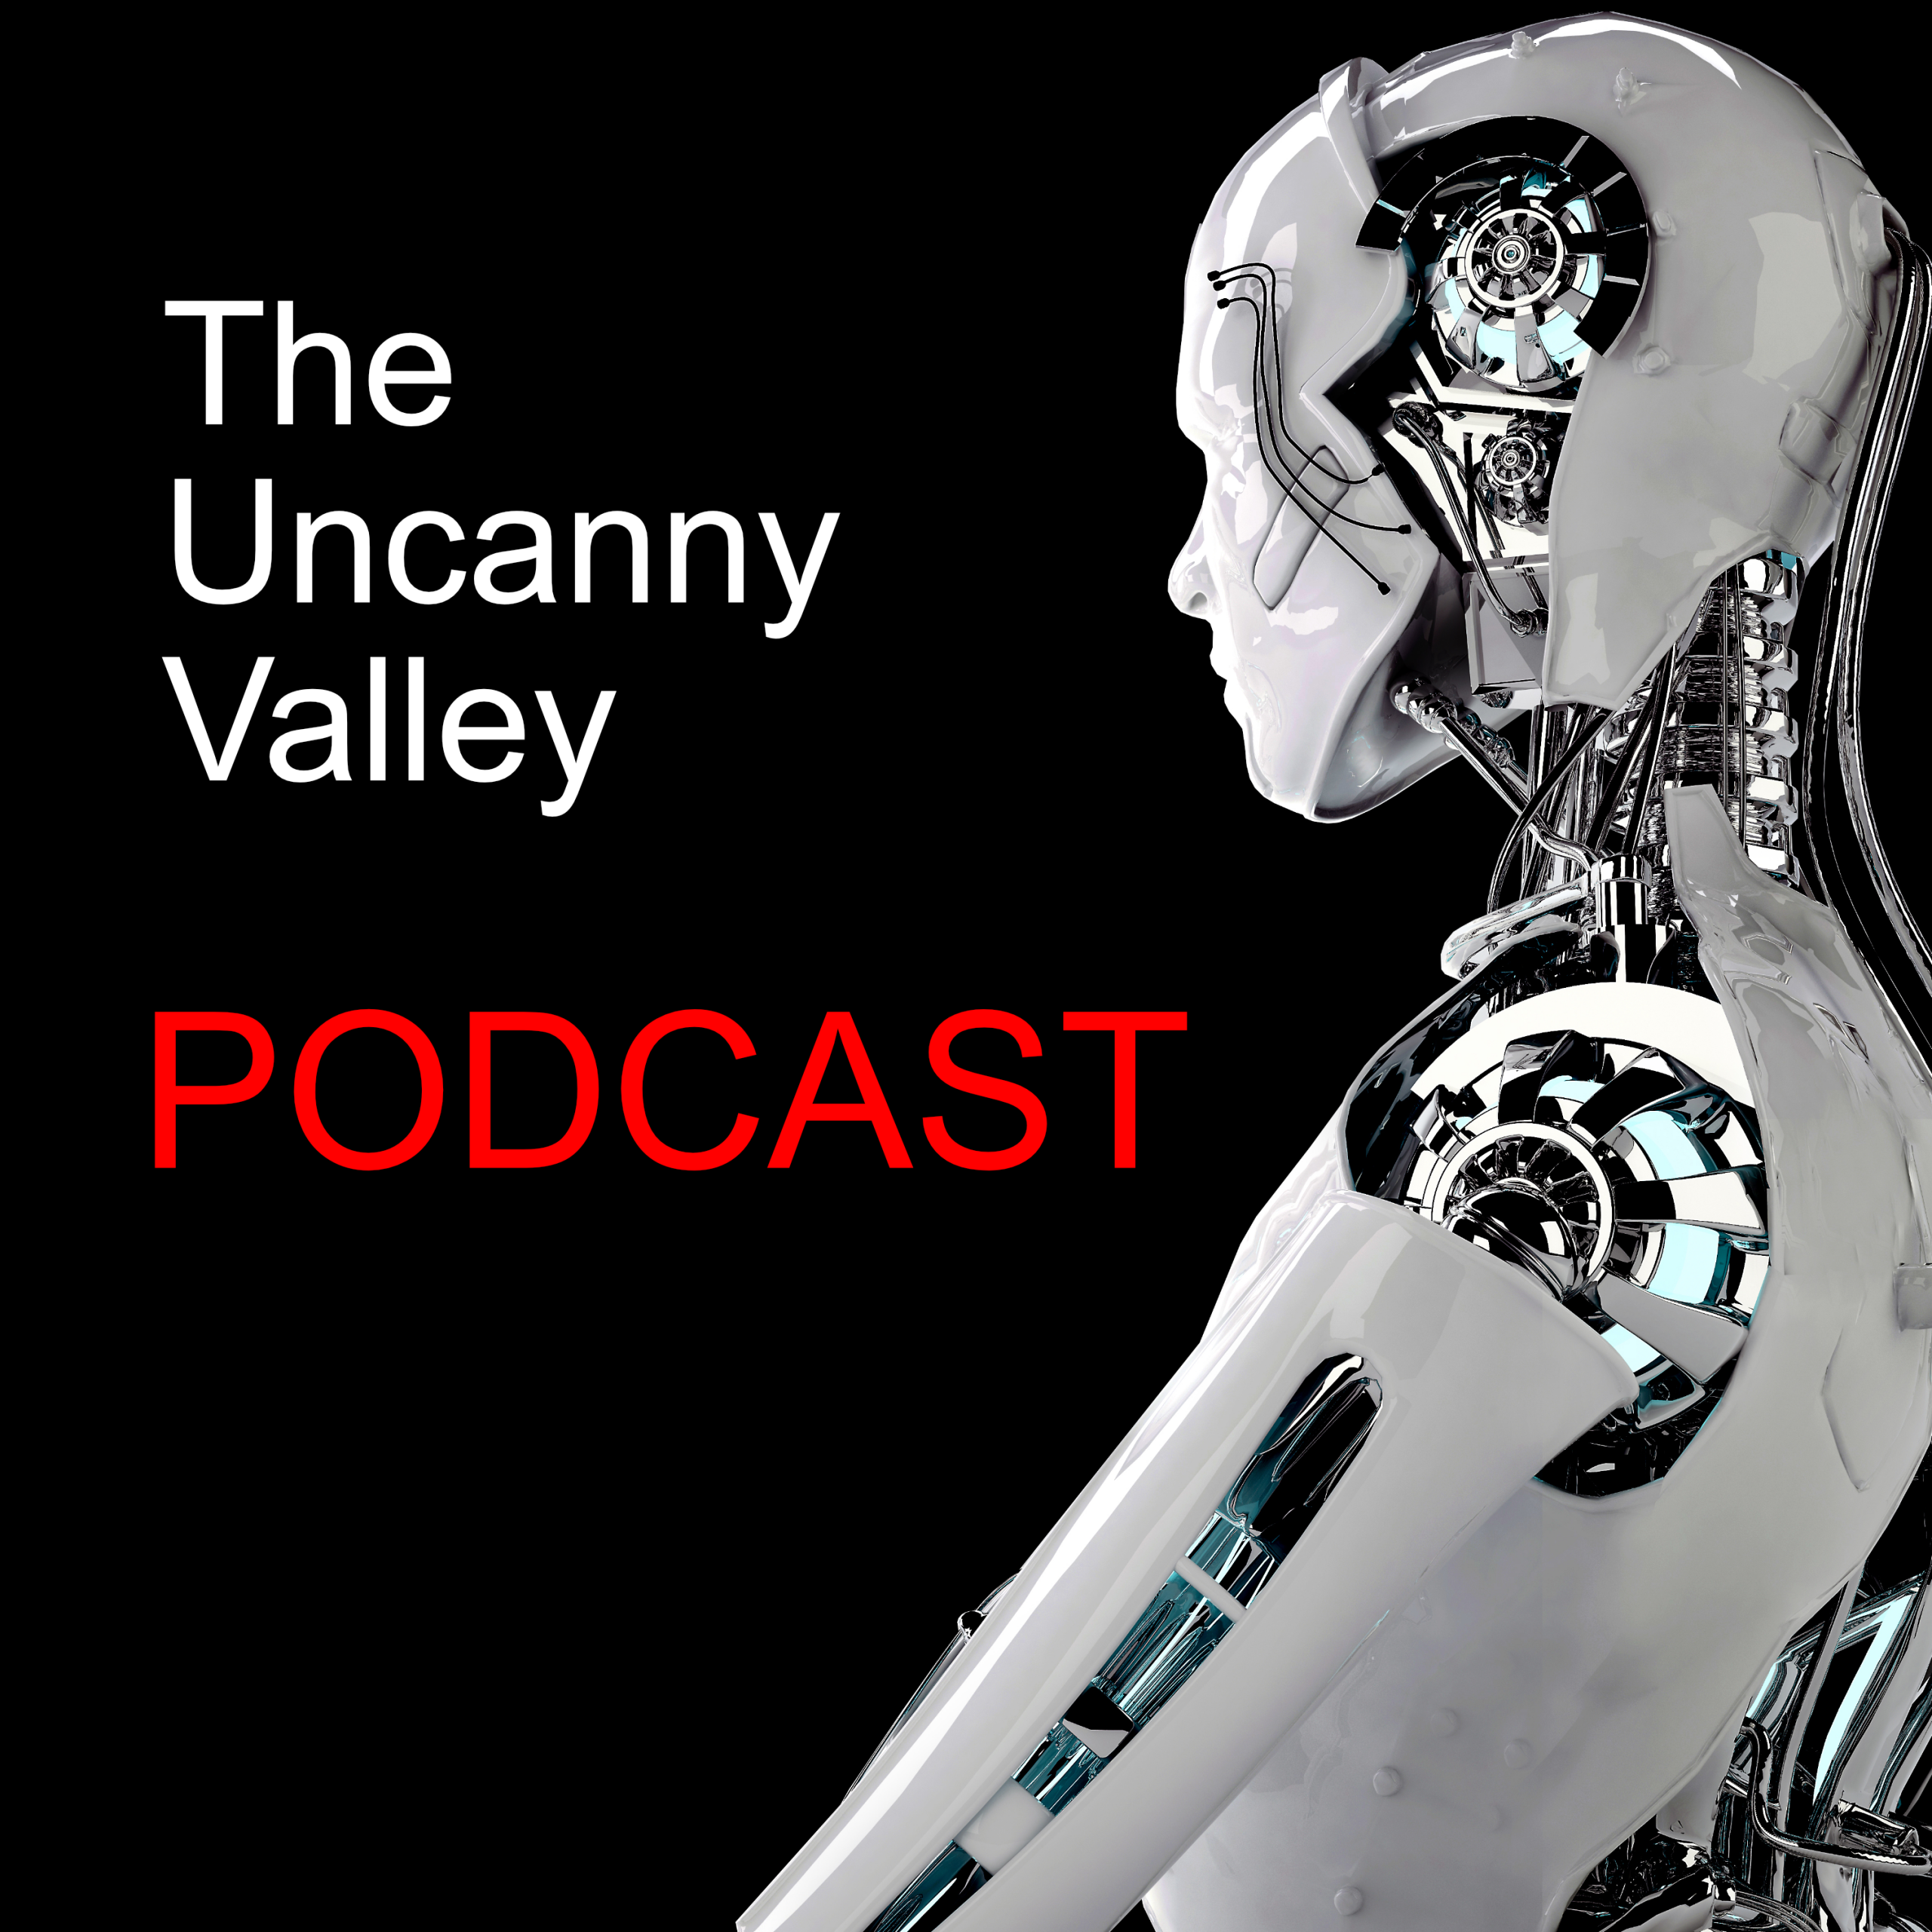 The Uncanny Valley Podcast